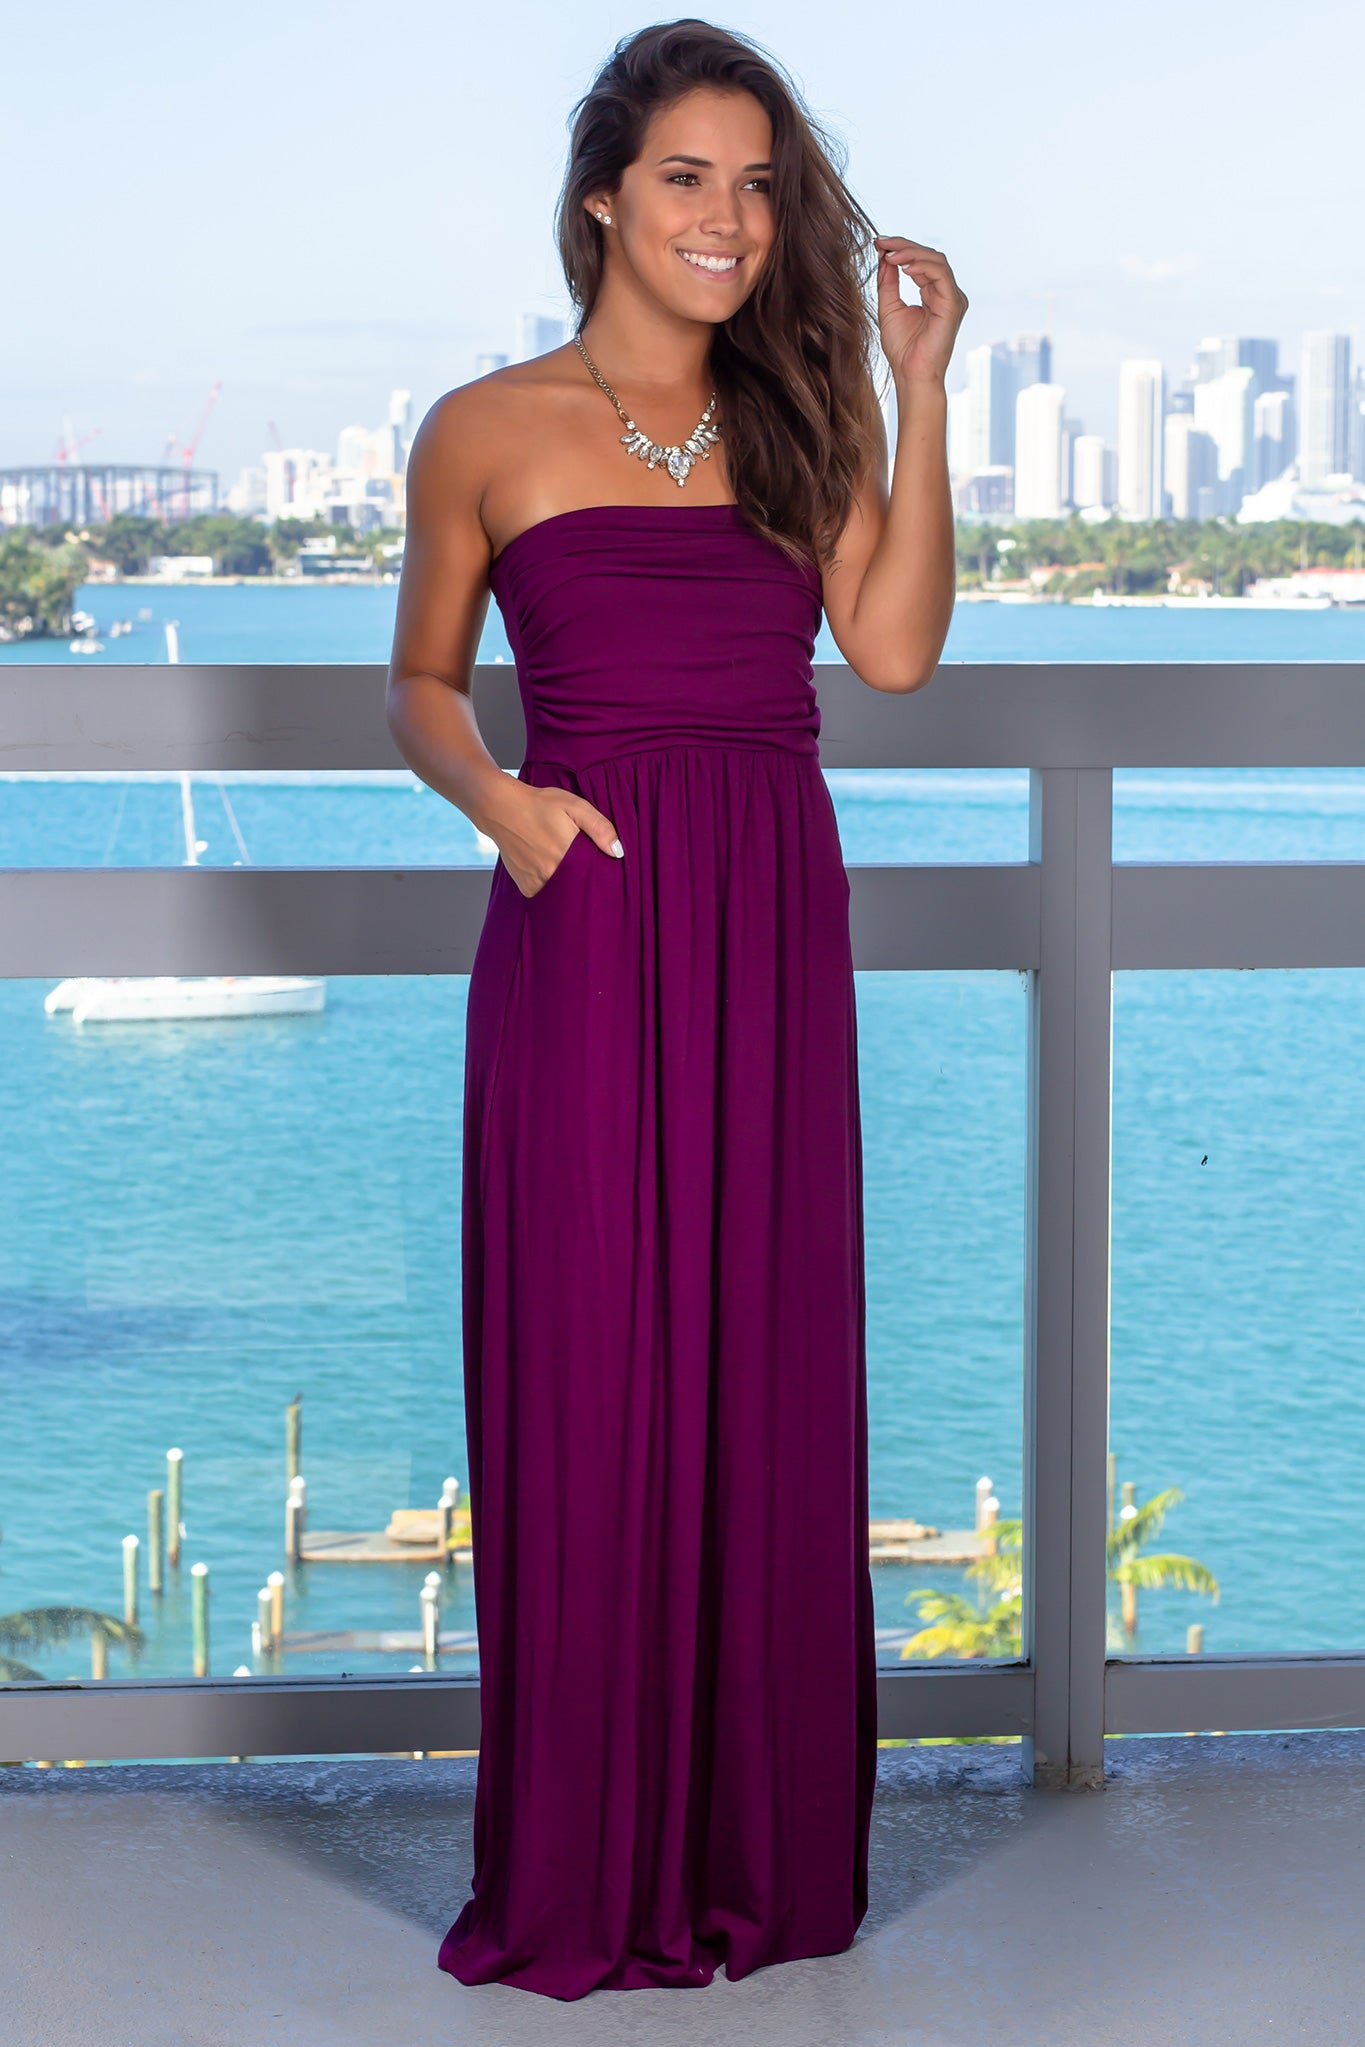 c7bac2aa27b Strapless Dark Plum Maxi Dress with Pockets